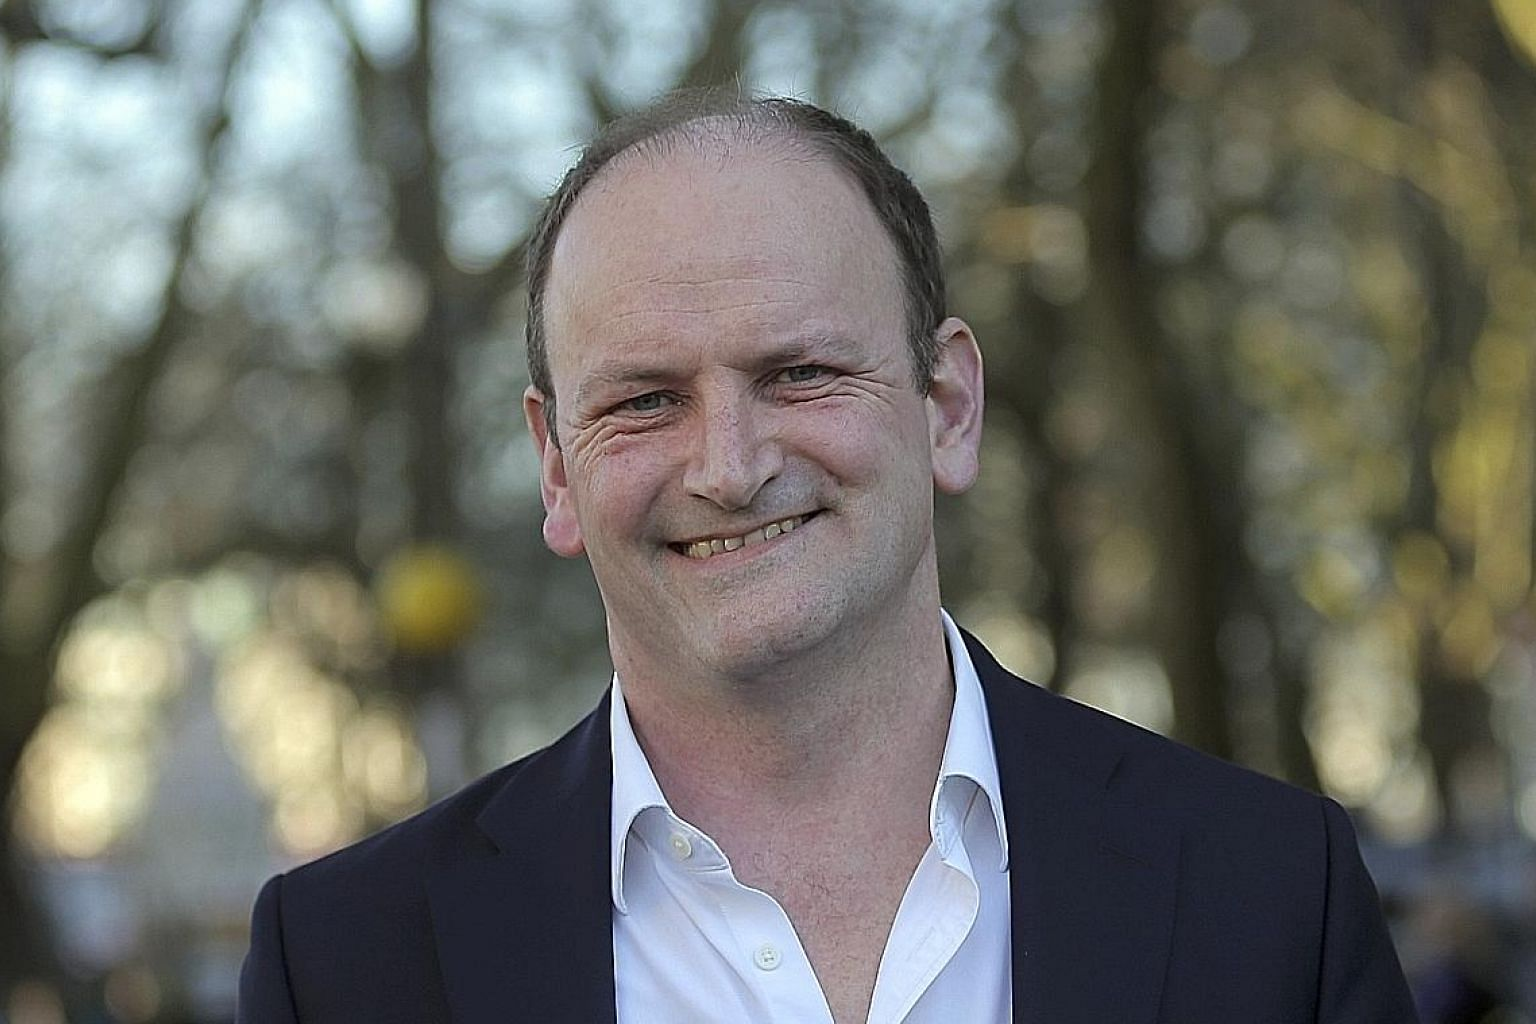 Mr Douglas Carswell's exit comes just days before the Prime Minister plans to begin the formal Brexit process.